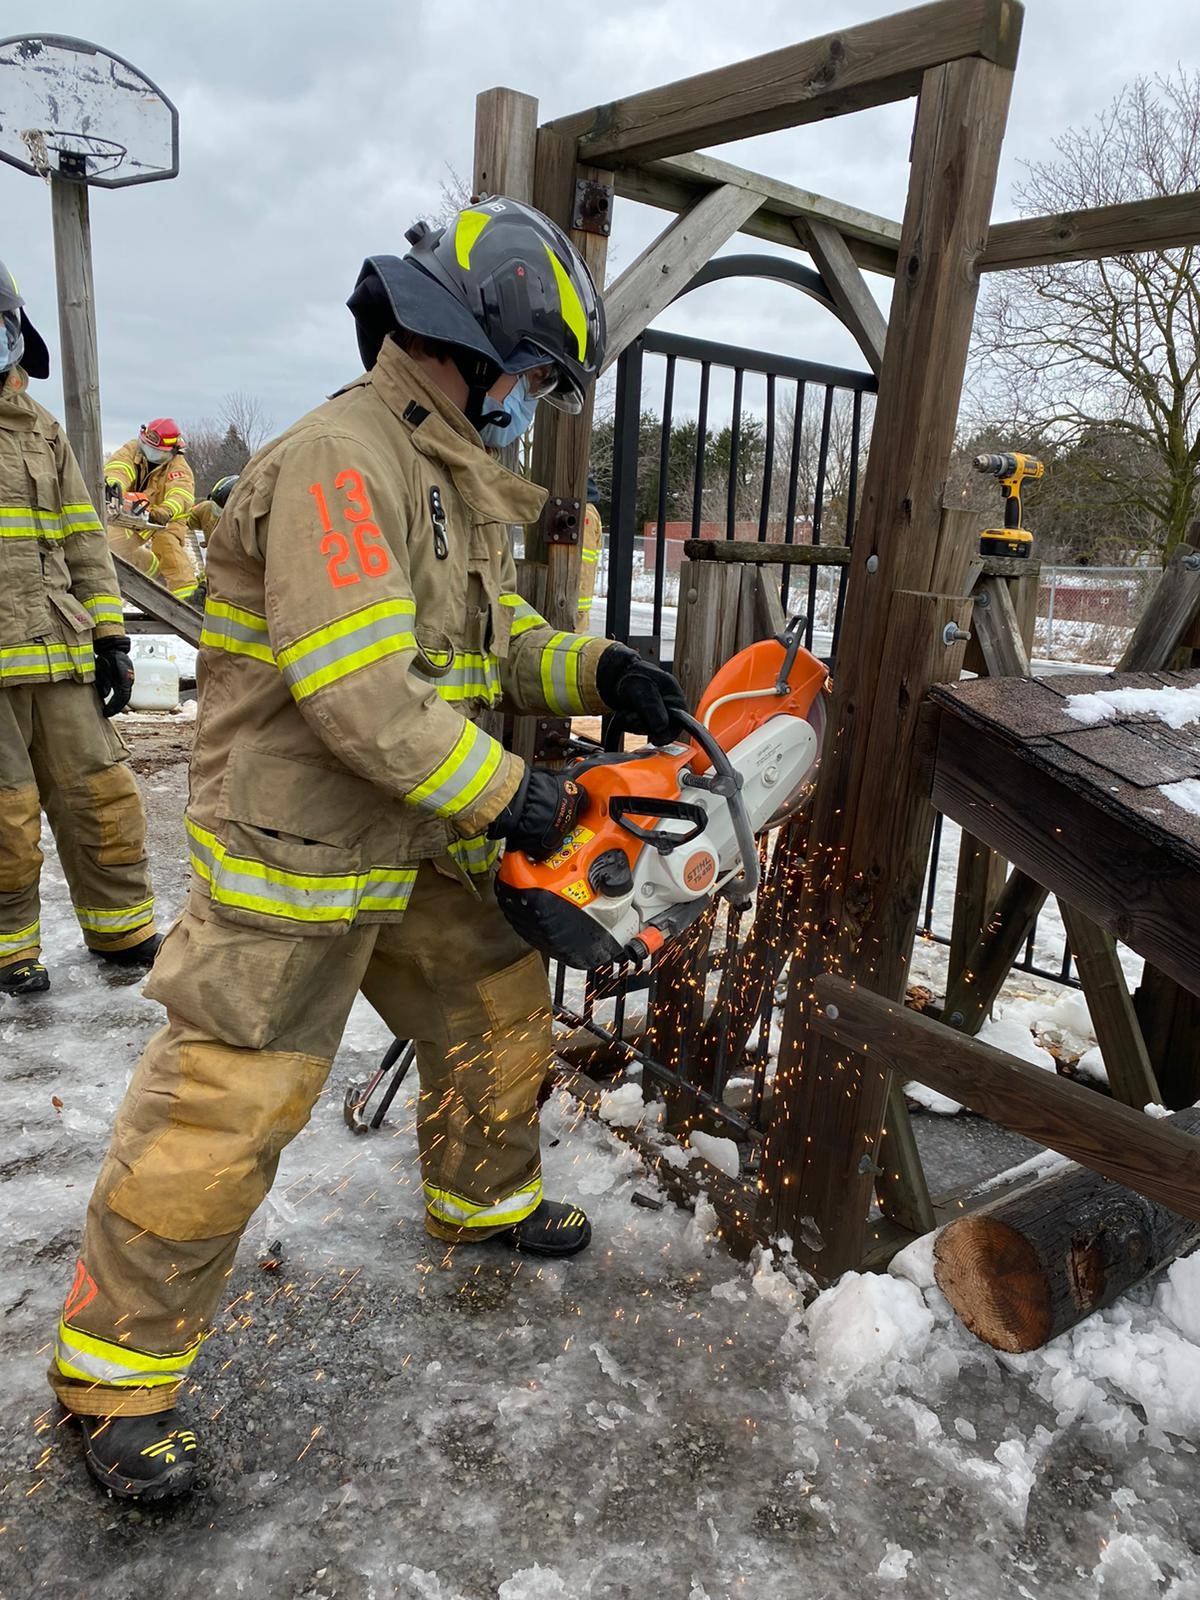 Firefighter cutting icy gate